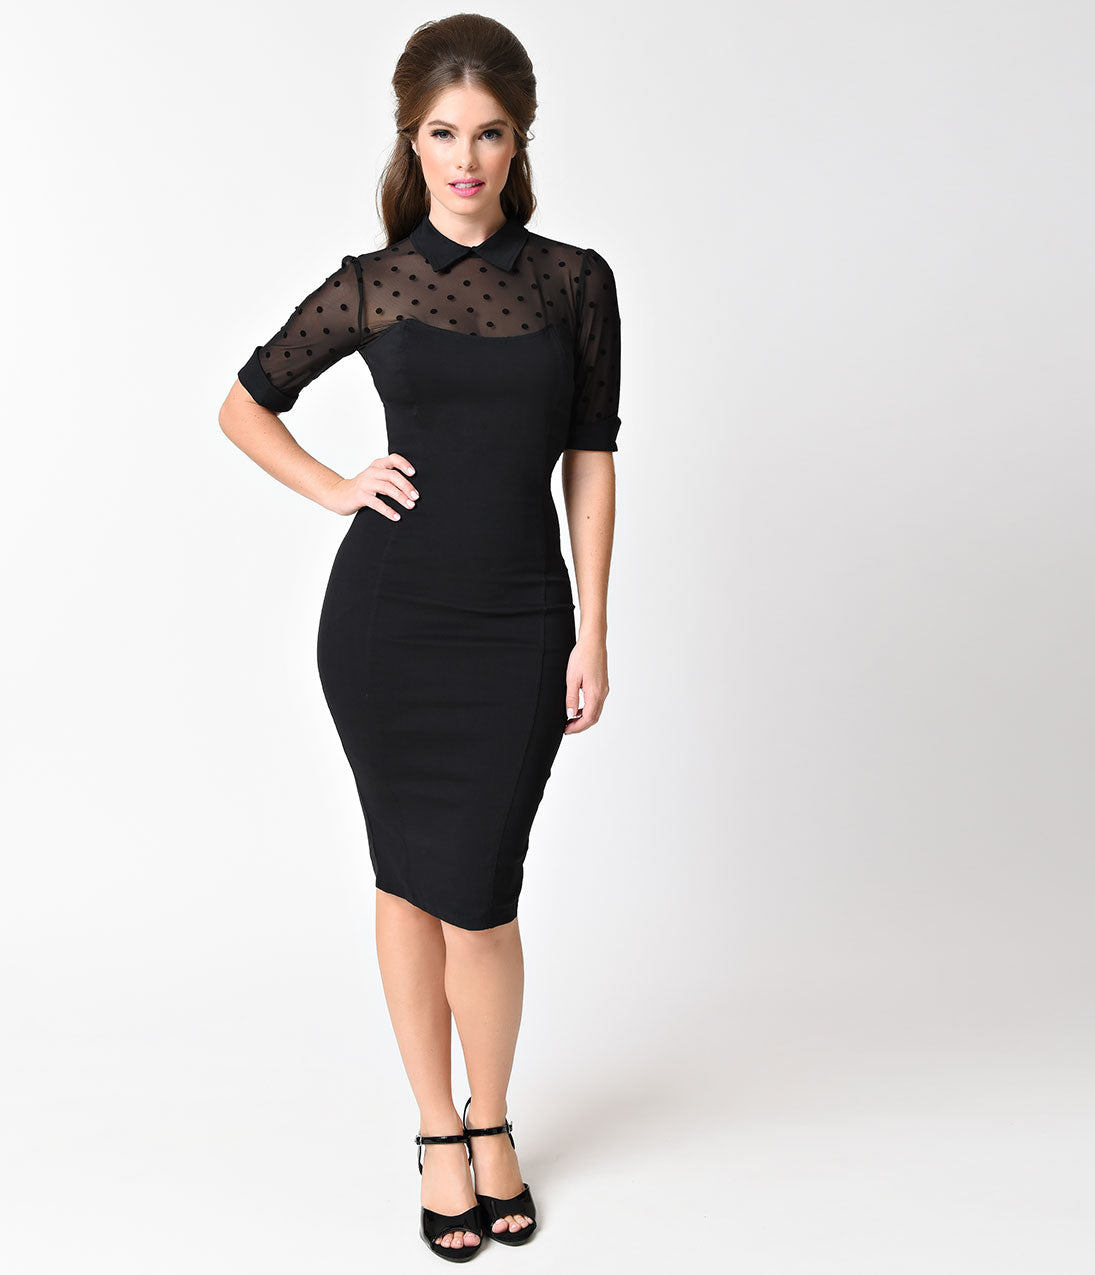 500 Vintage Style Dresses for Sale | Vintage Inspired Dresses Collectif Black  Sheer Swiss Dot Short Sleeve Wednesday Wiggle Dress $78.00 AT vintagedancer.com